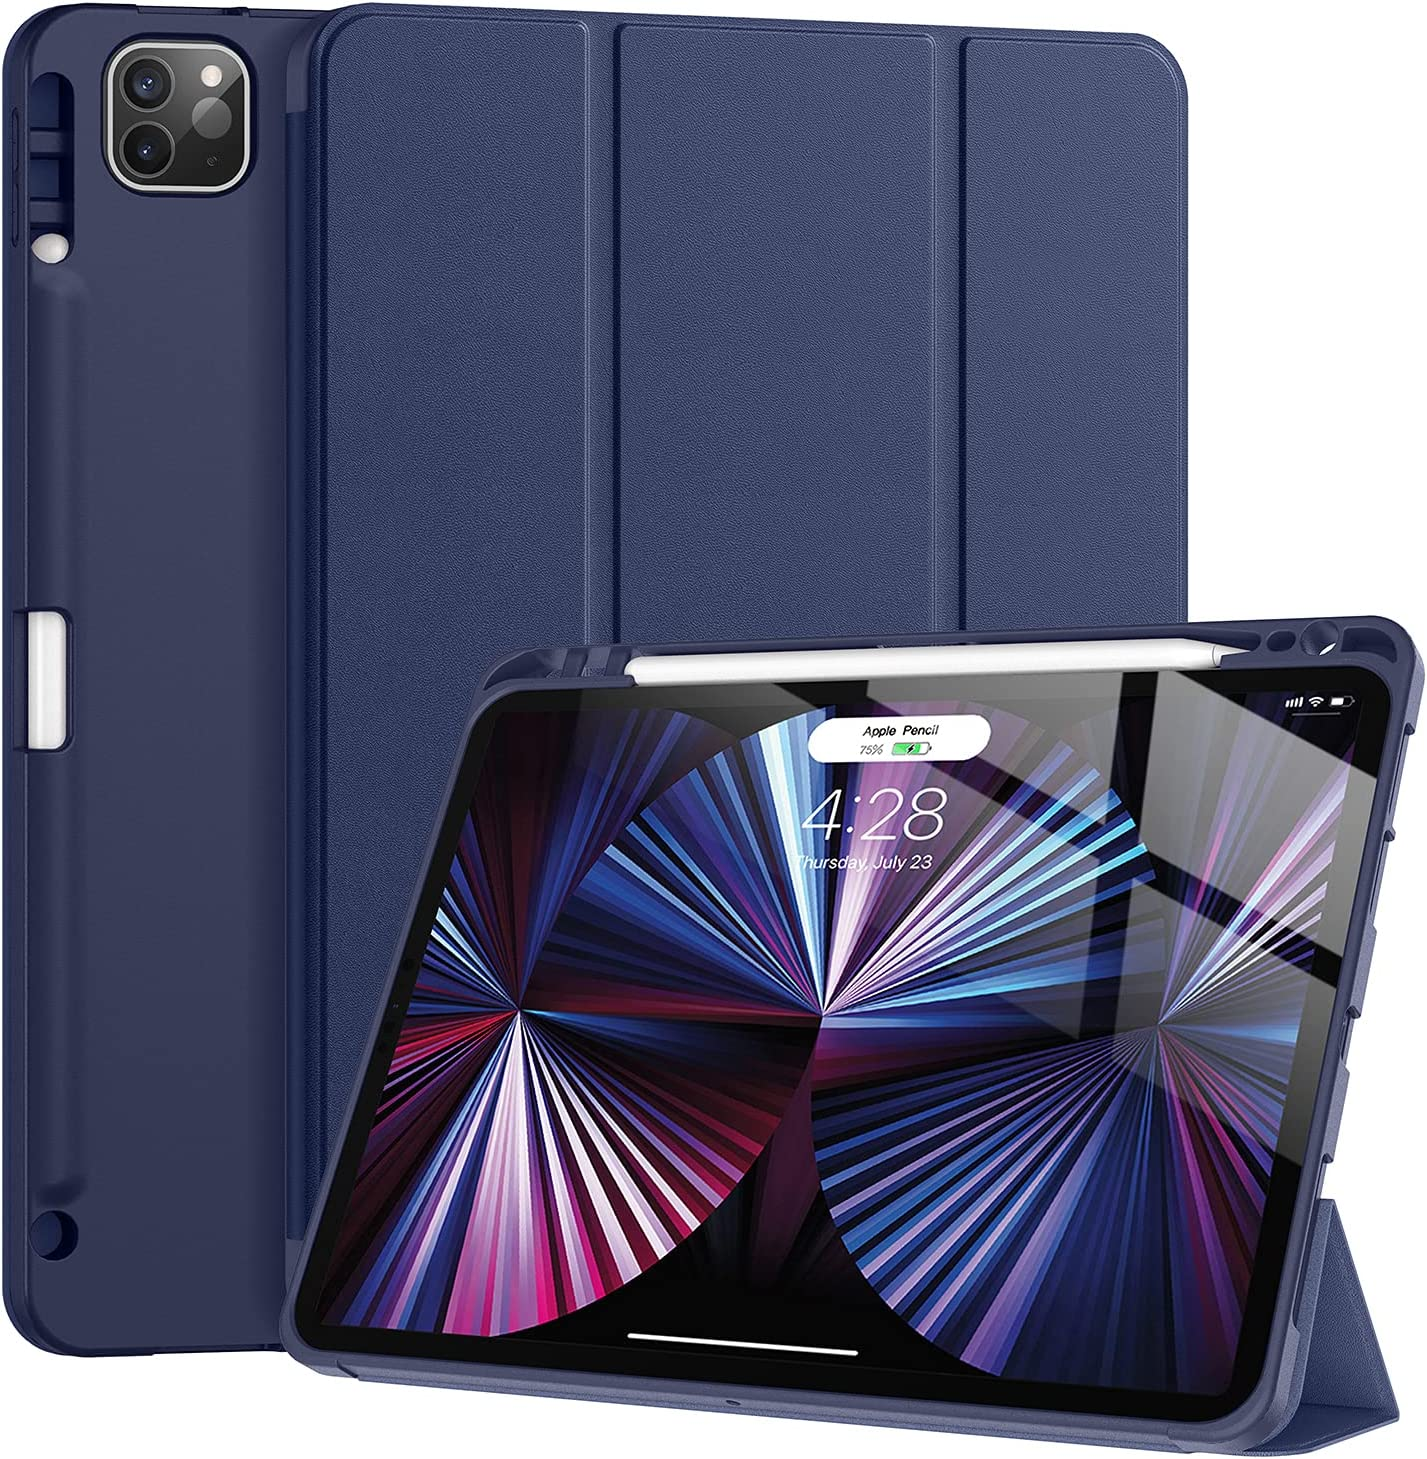 Tuosake iPad Pro 11 inch Case 2021 with Pencil Holder, Slim Lightweight Trifold Stand Case with Soft TPU Back Cover【Auto Sleep /Wake+Pencil Charging】 Smart Case for iPad Pro 11 3rd Gen(Dark Blue)